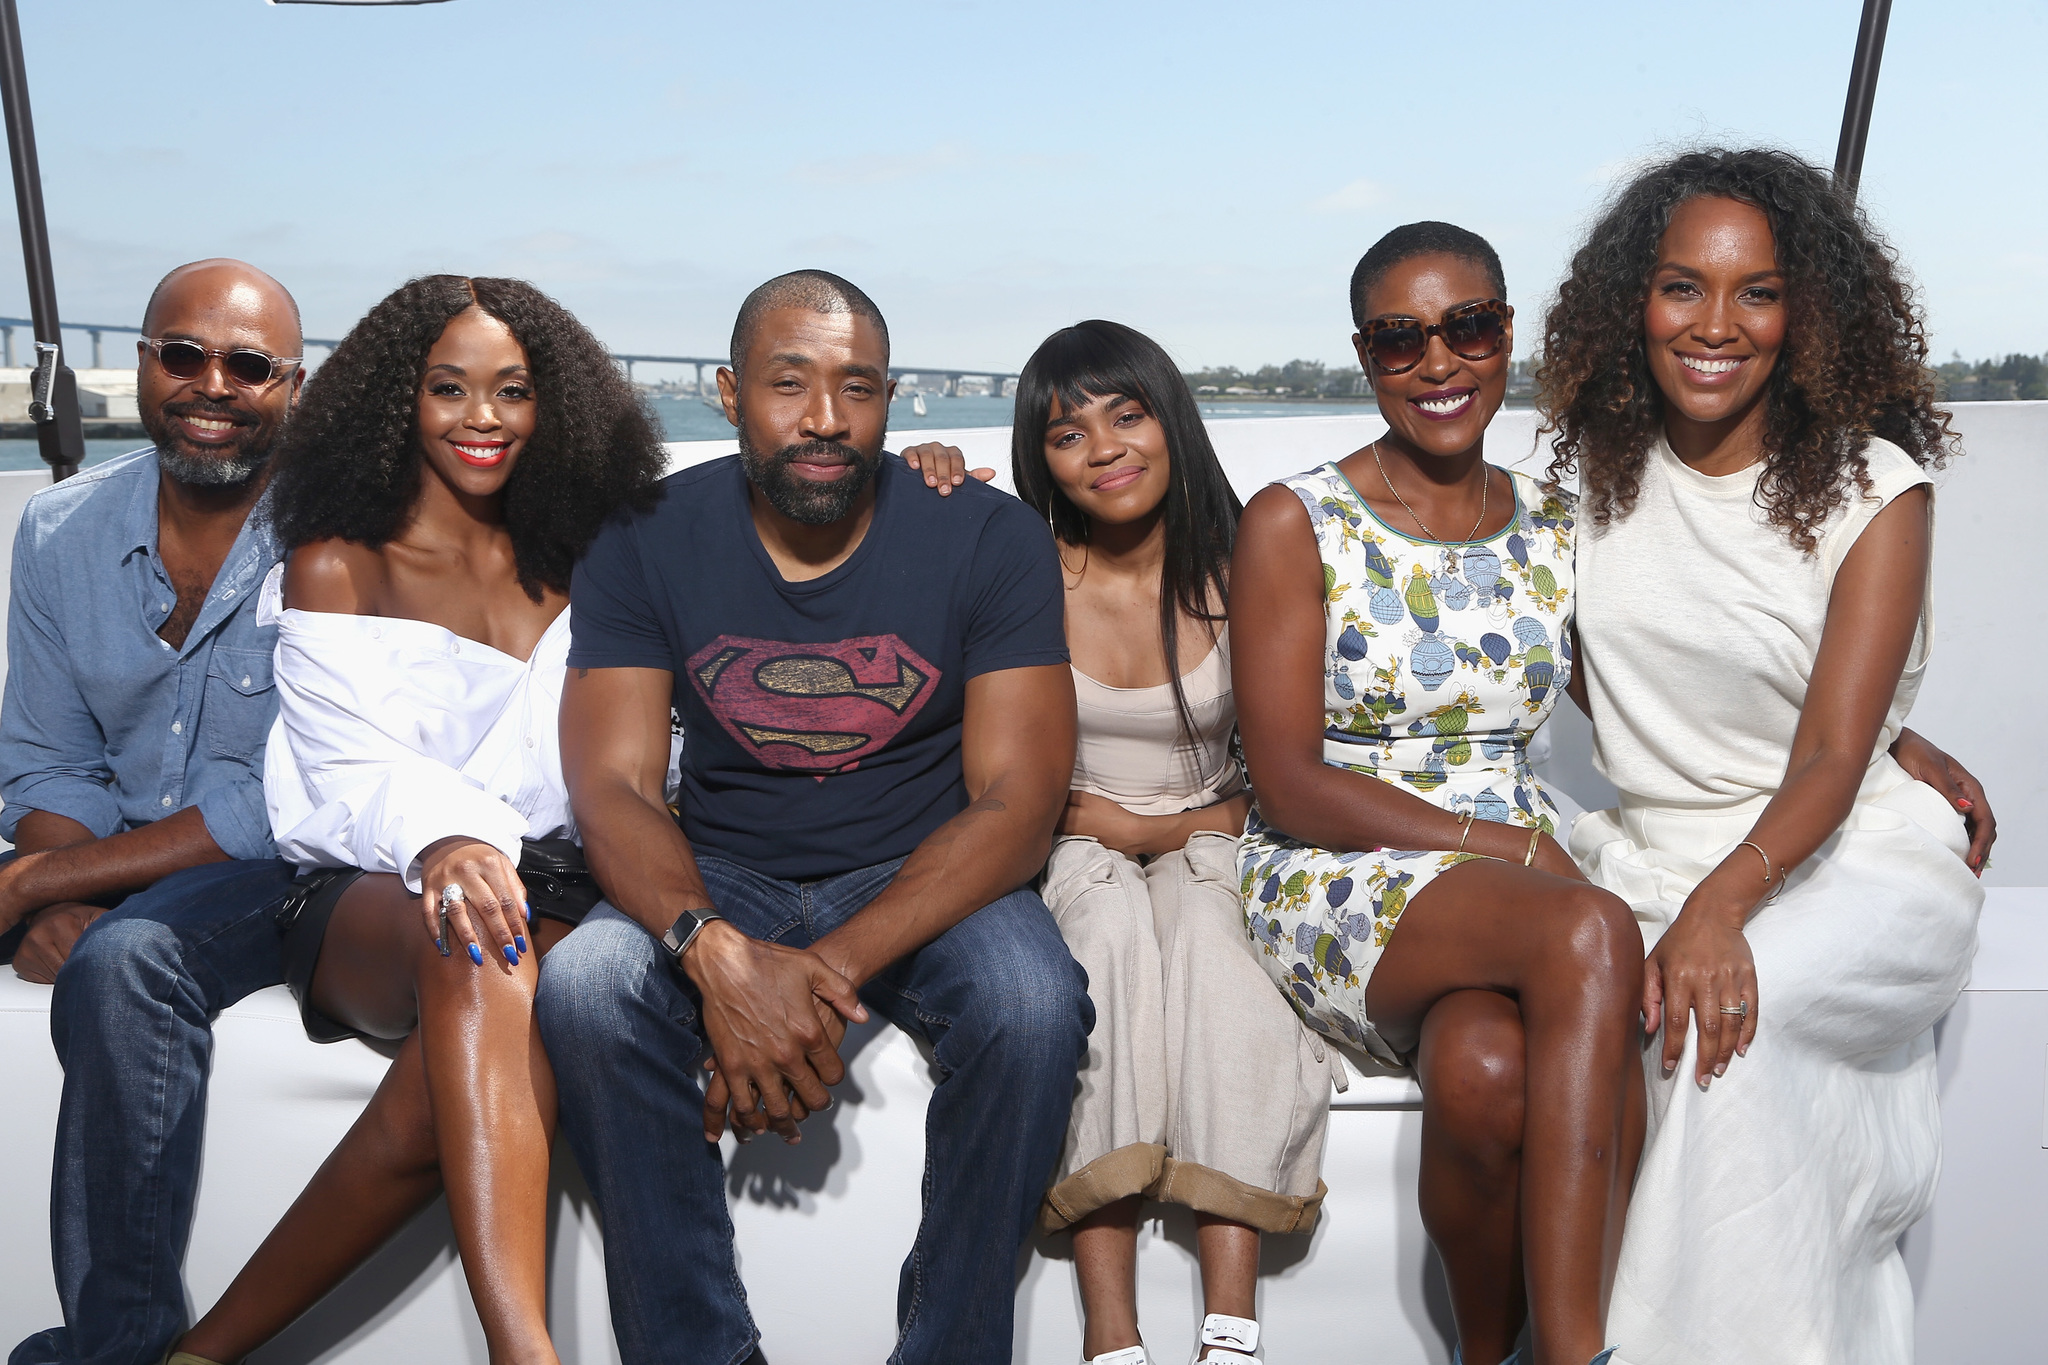 Christine Adams, Mara Brock Akil, Salim Akil, Cress Williams, China Anne McClain és Nafessa Williams